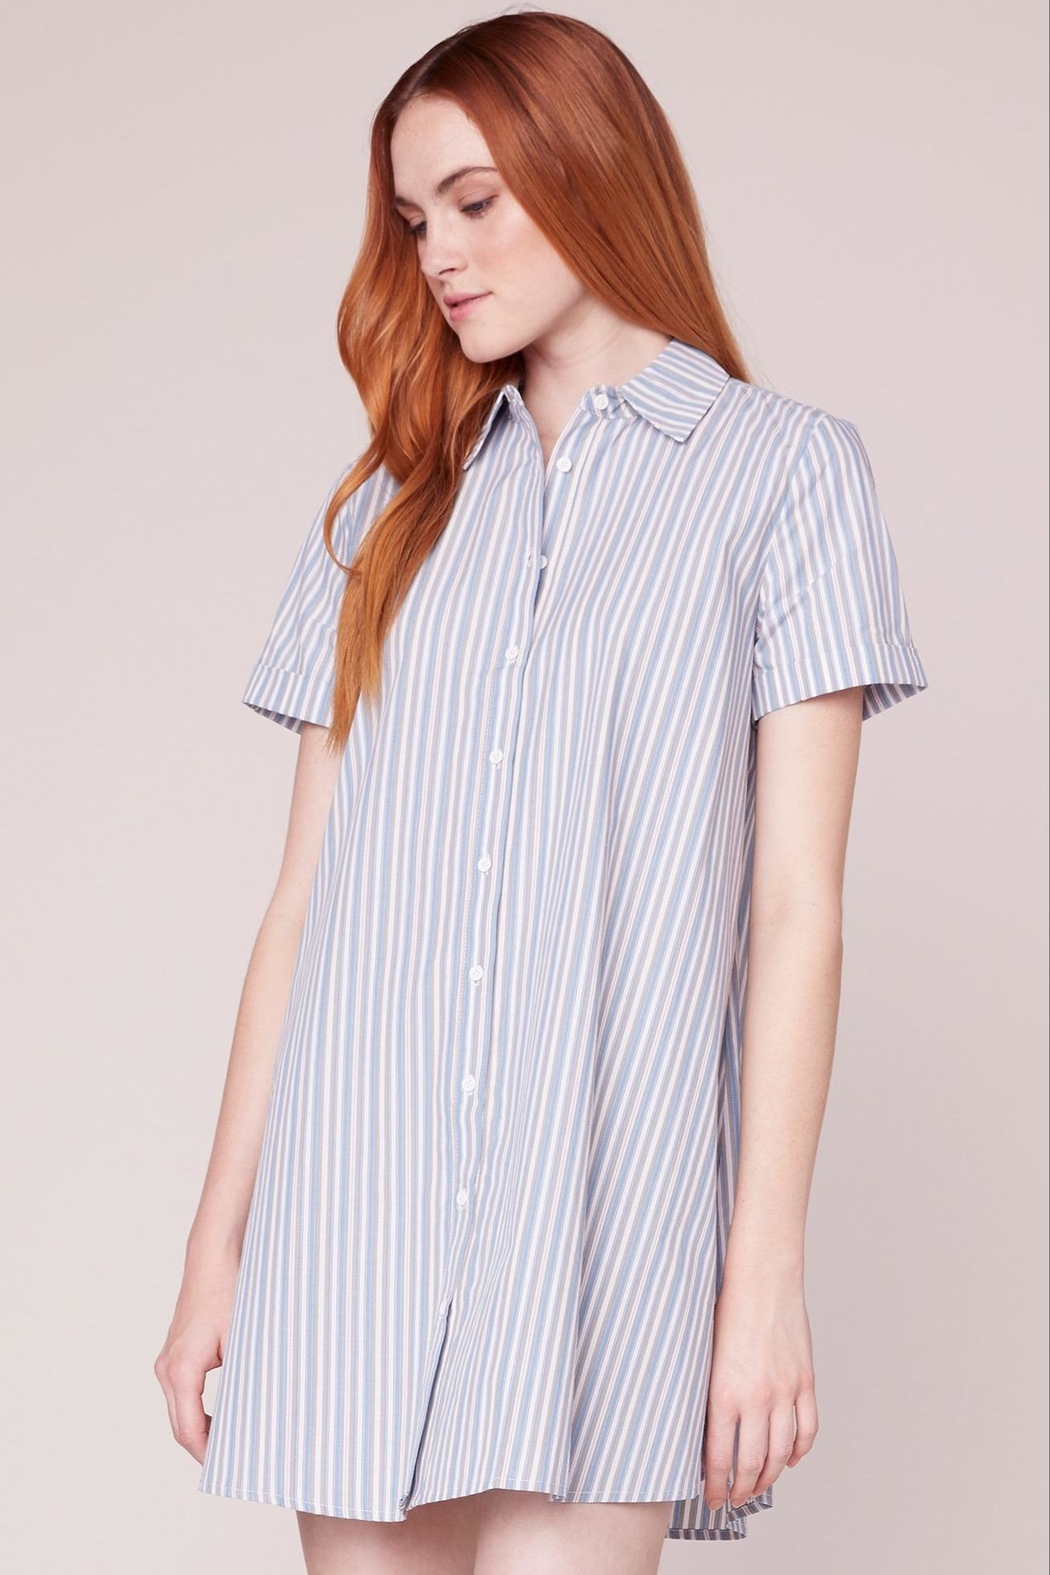 BB Dakota Striped Shirt Dress - Main Image